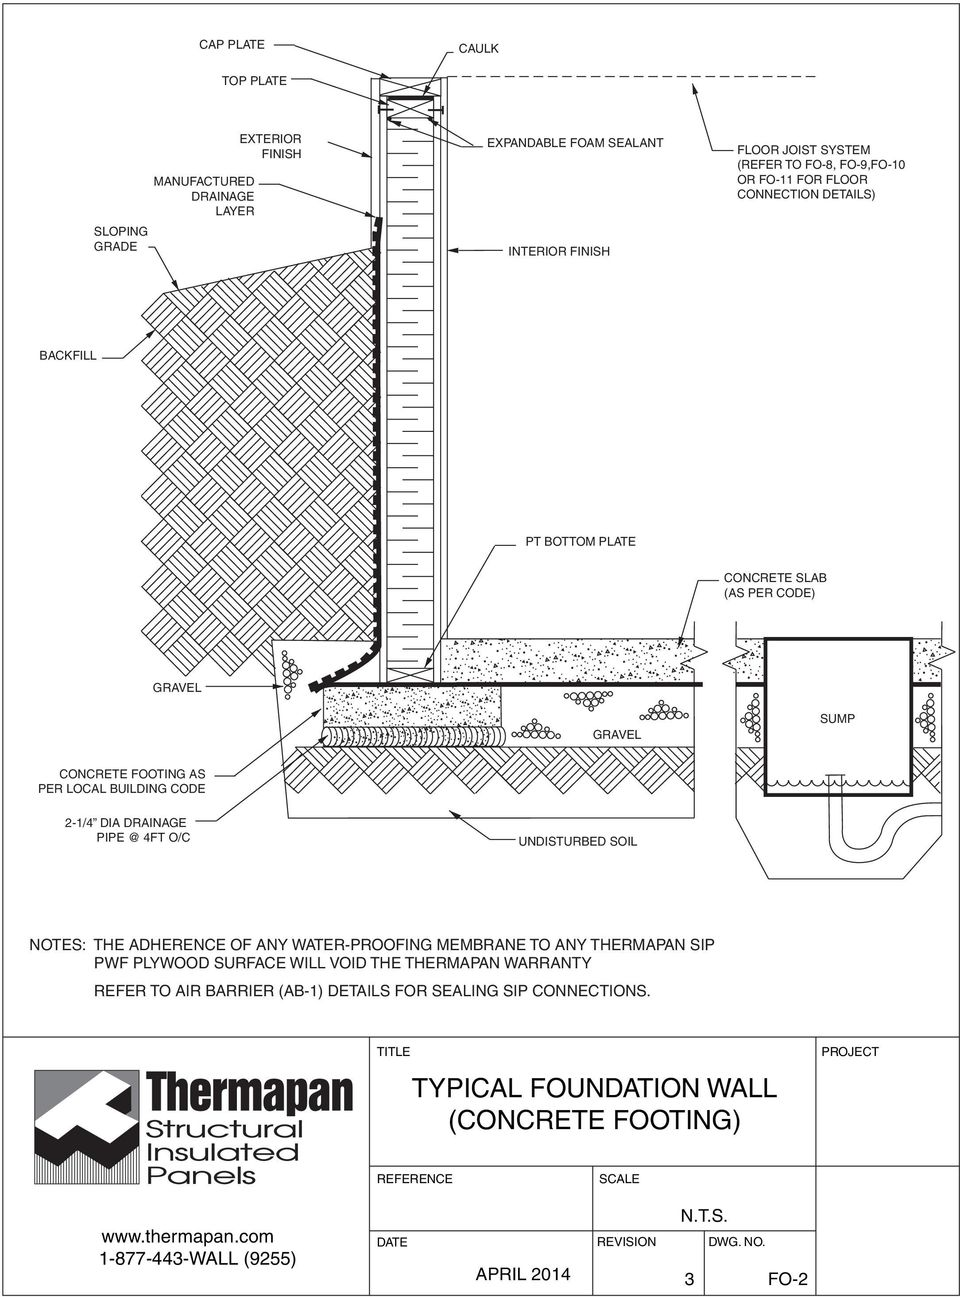 BUILDING CODE 2-1/4 DIA DRAINAGE PIPE @ 4FT O/C UNDISTURBED SOIL NOTES: THE ADHERENCE OF ANY WATER-PROOFING MEMBRANE TO ANY THERMAPAN SIP PWF PLYWOOD SURFACE